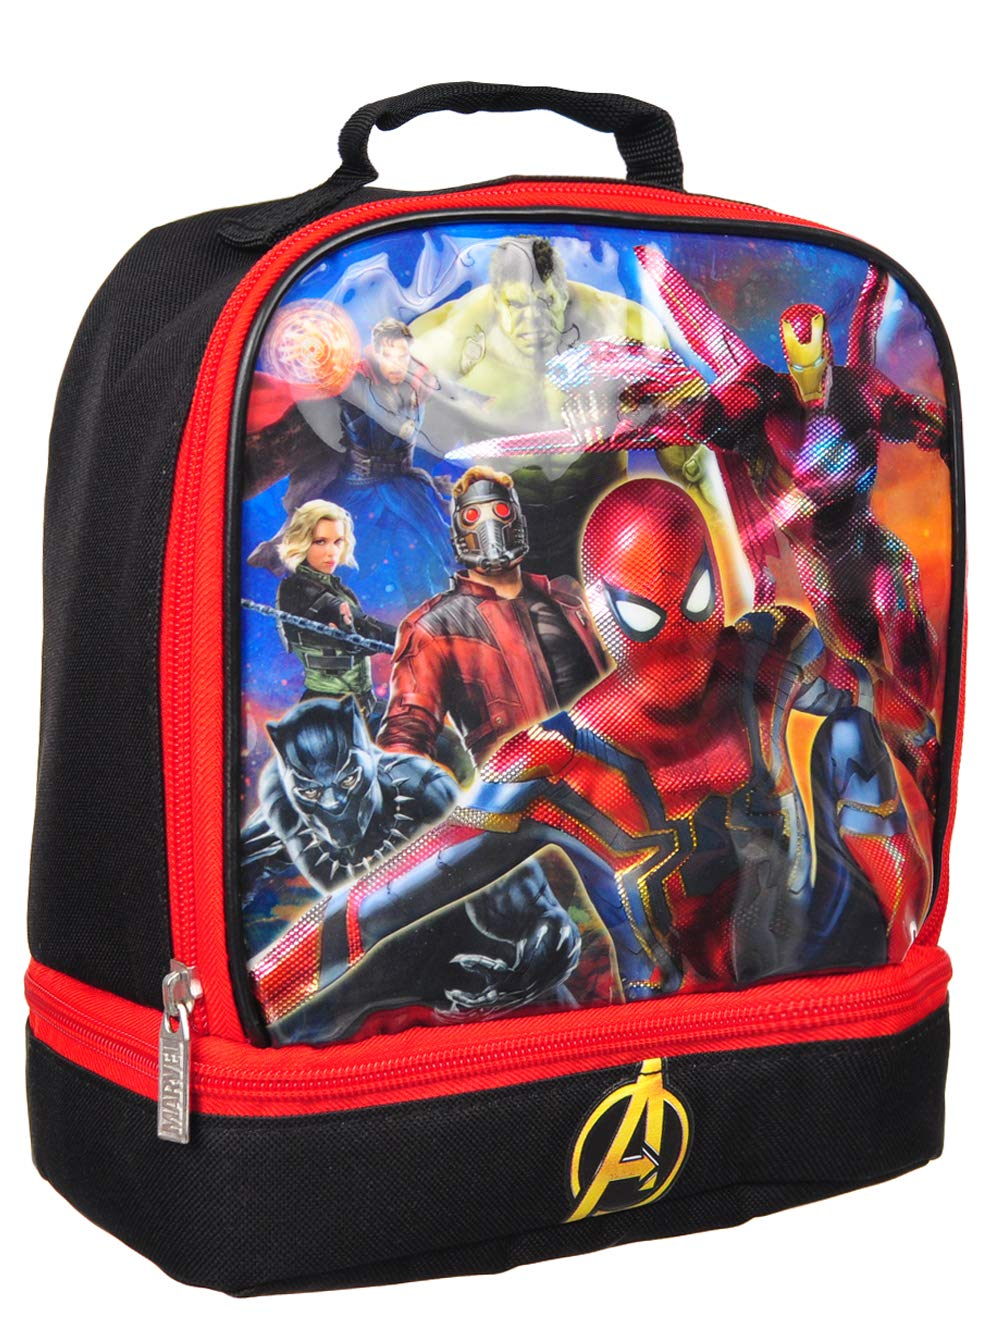 Marvel Avengers Captain America Superheroes Dual Insulated Lunch Box - Lunchbox by MARVEL Avengers